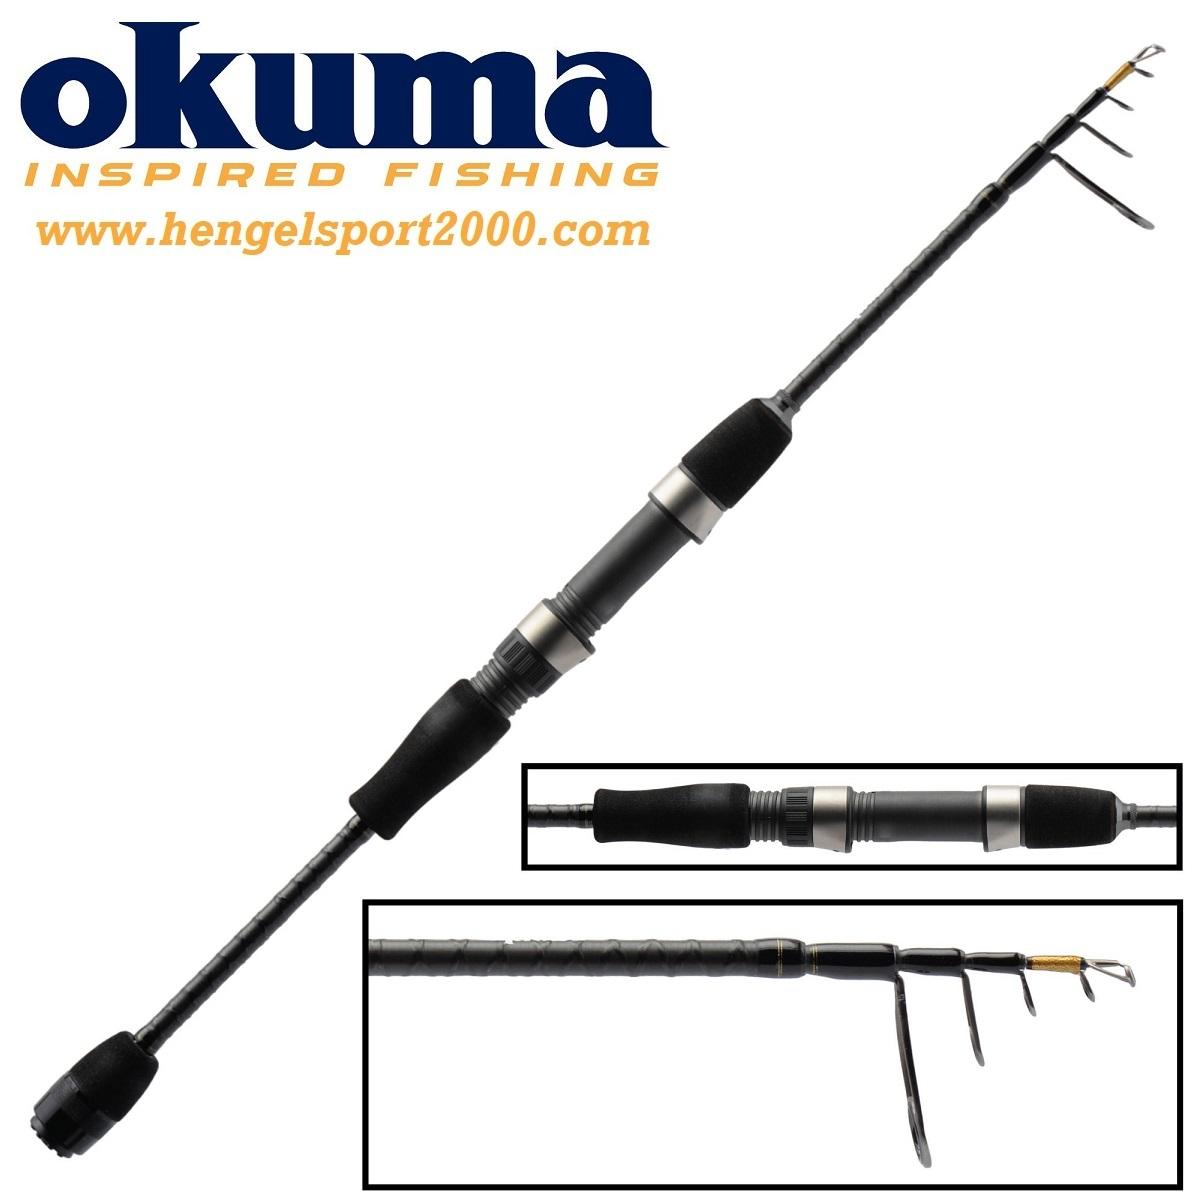 Okuma Light Range Fishing Tele Spin 180 cm 1 - 7 gram